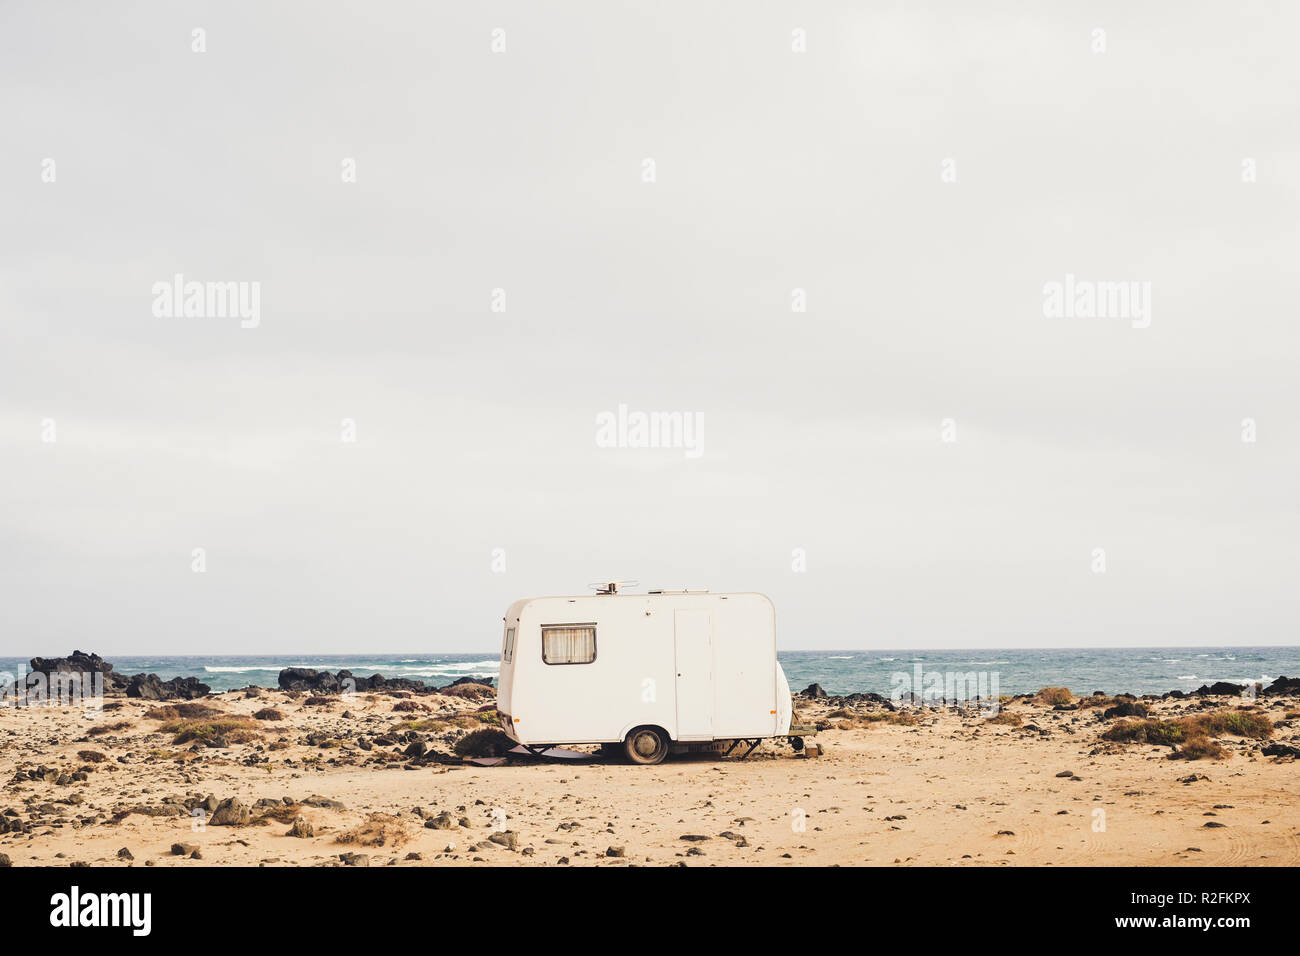 really alternative lifestyle in contact with the nature and yourself living in the middle of nowhere with a little tiny house caravan parked on the coast with ocean waves view. independence and wild life. fuerteventura. - Stock Image